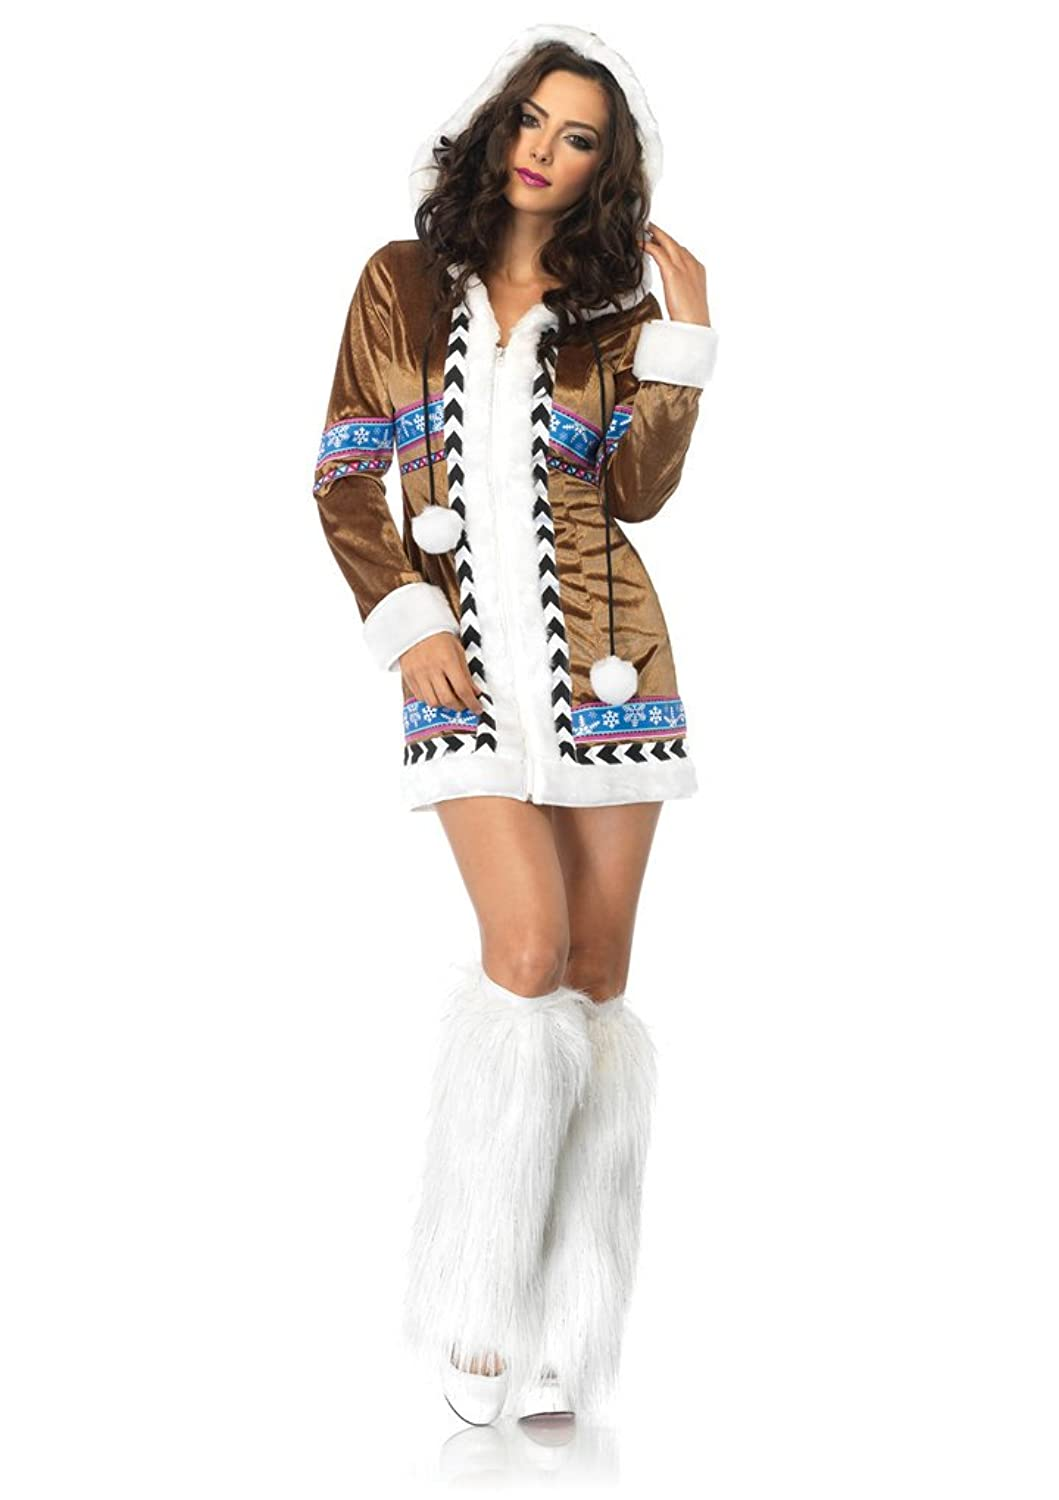 Leg Avenue Women's Igloo Cutie Costume Halloween plush trimmed zipper front hooded dress with parka print detail and pom pom ties